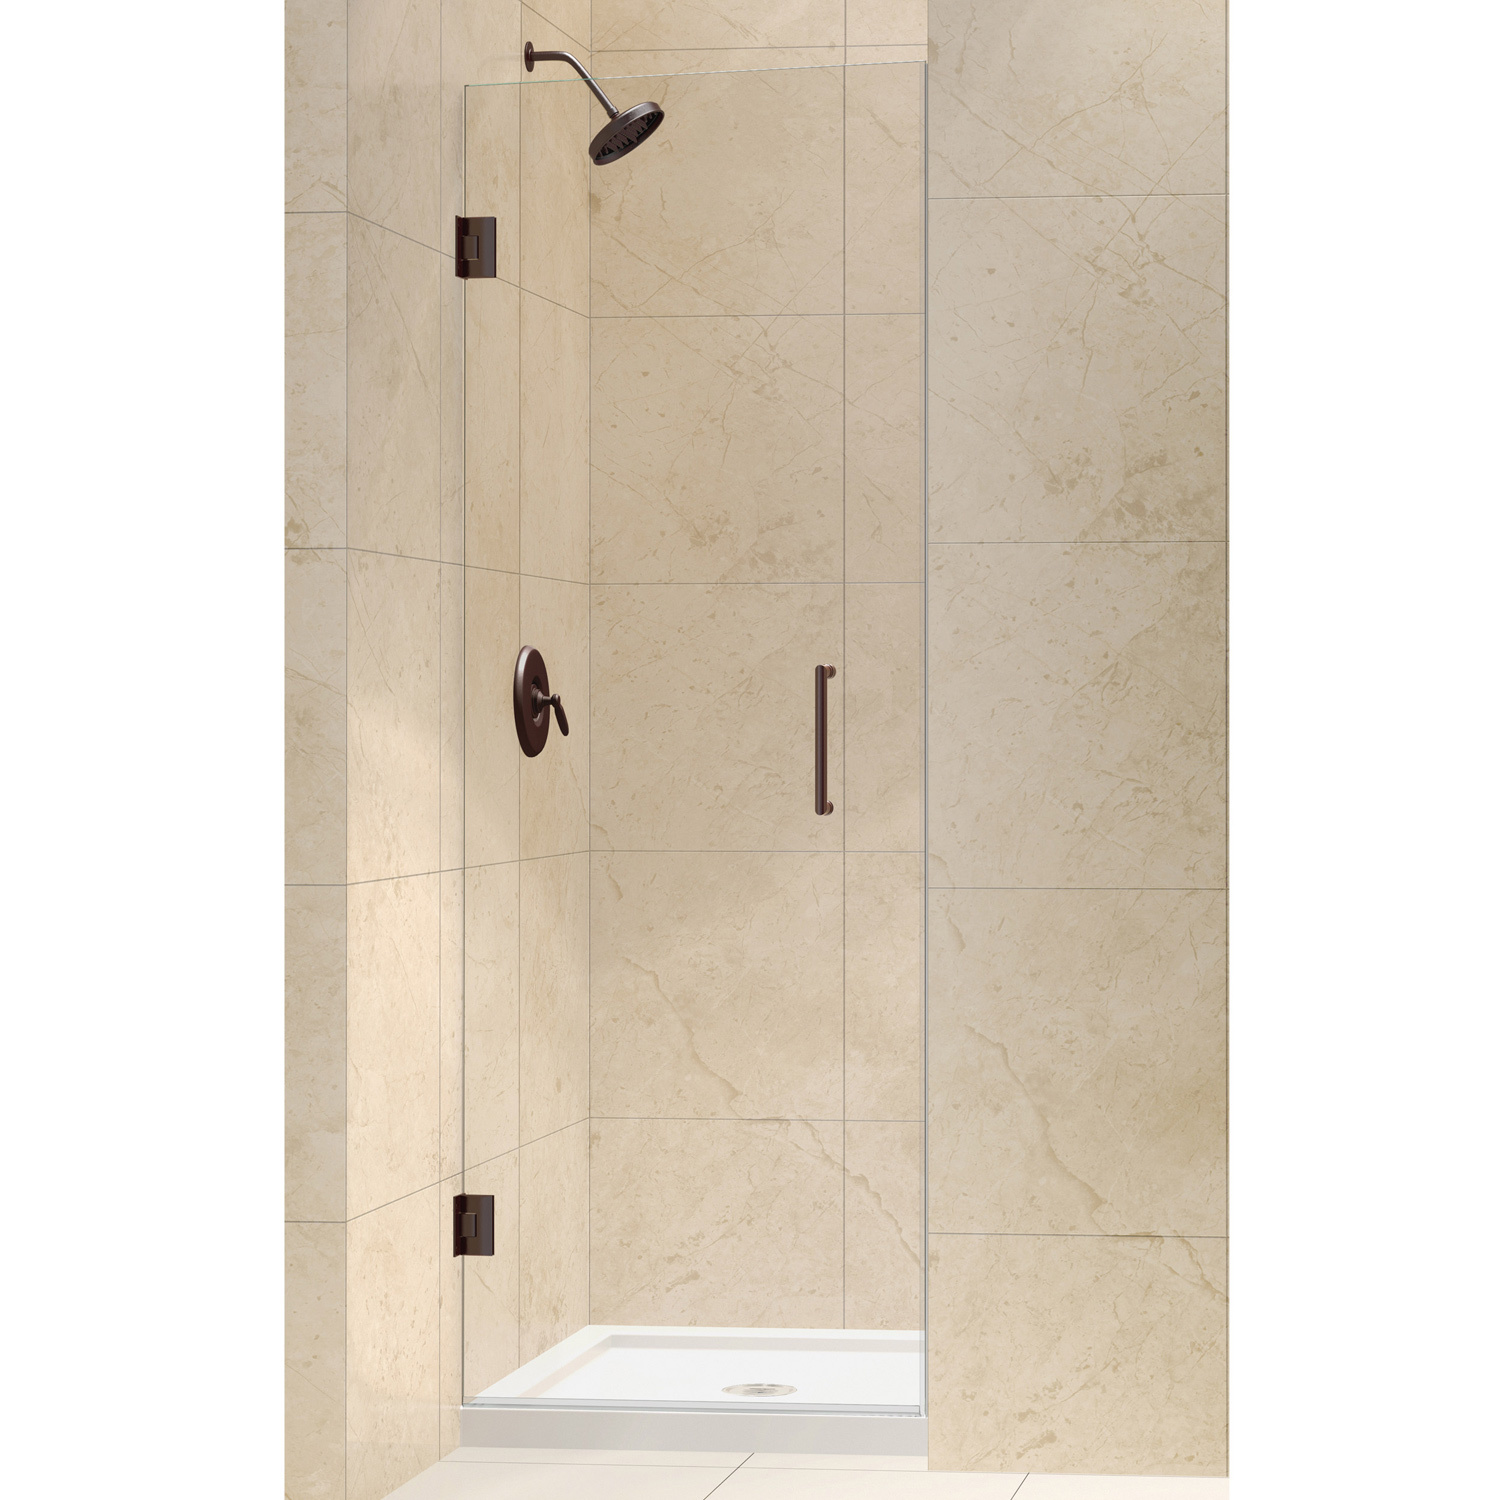 DreamLine Unidoor 24-inch Frameless Hinged Shower Door - Walmart.com